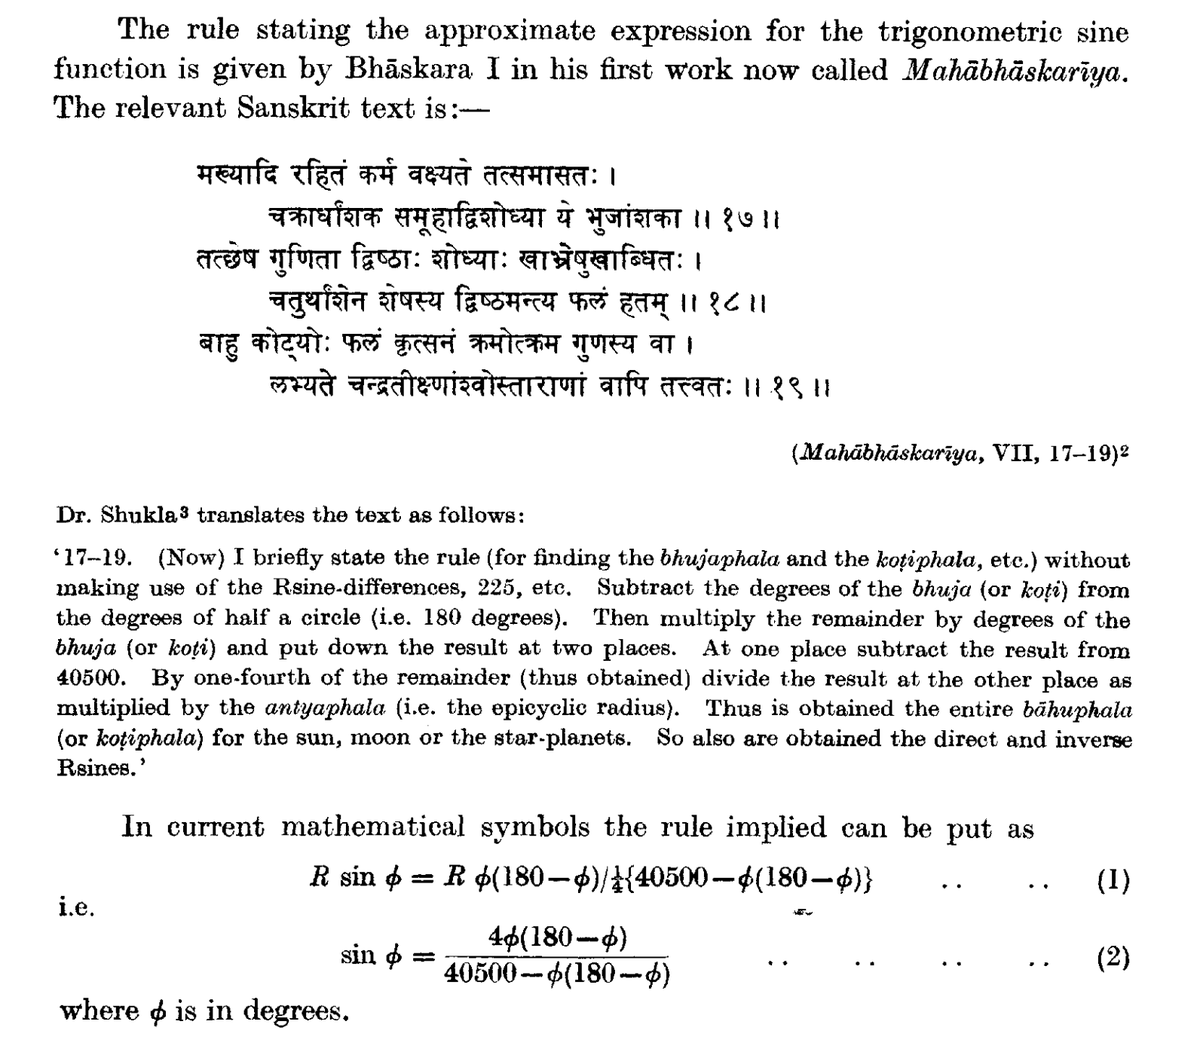 Bhaskara I had an interpolation formula for sine. And a wonderful formula too. http://t.co/INInIe5a8R